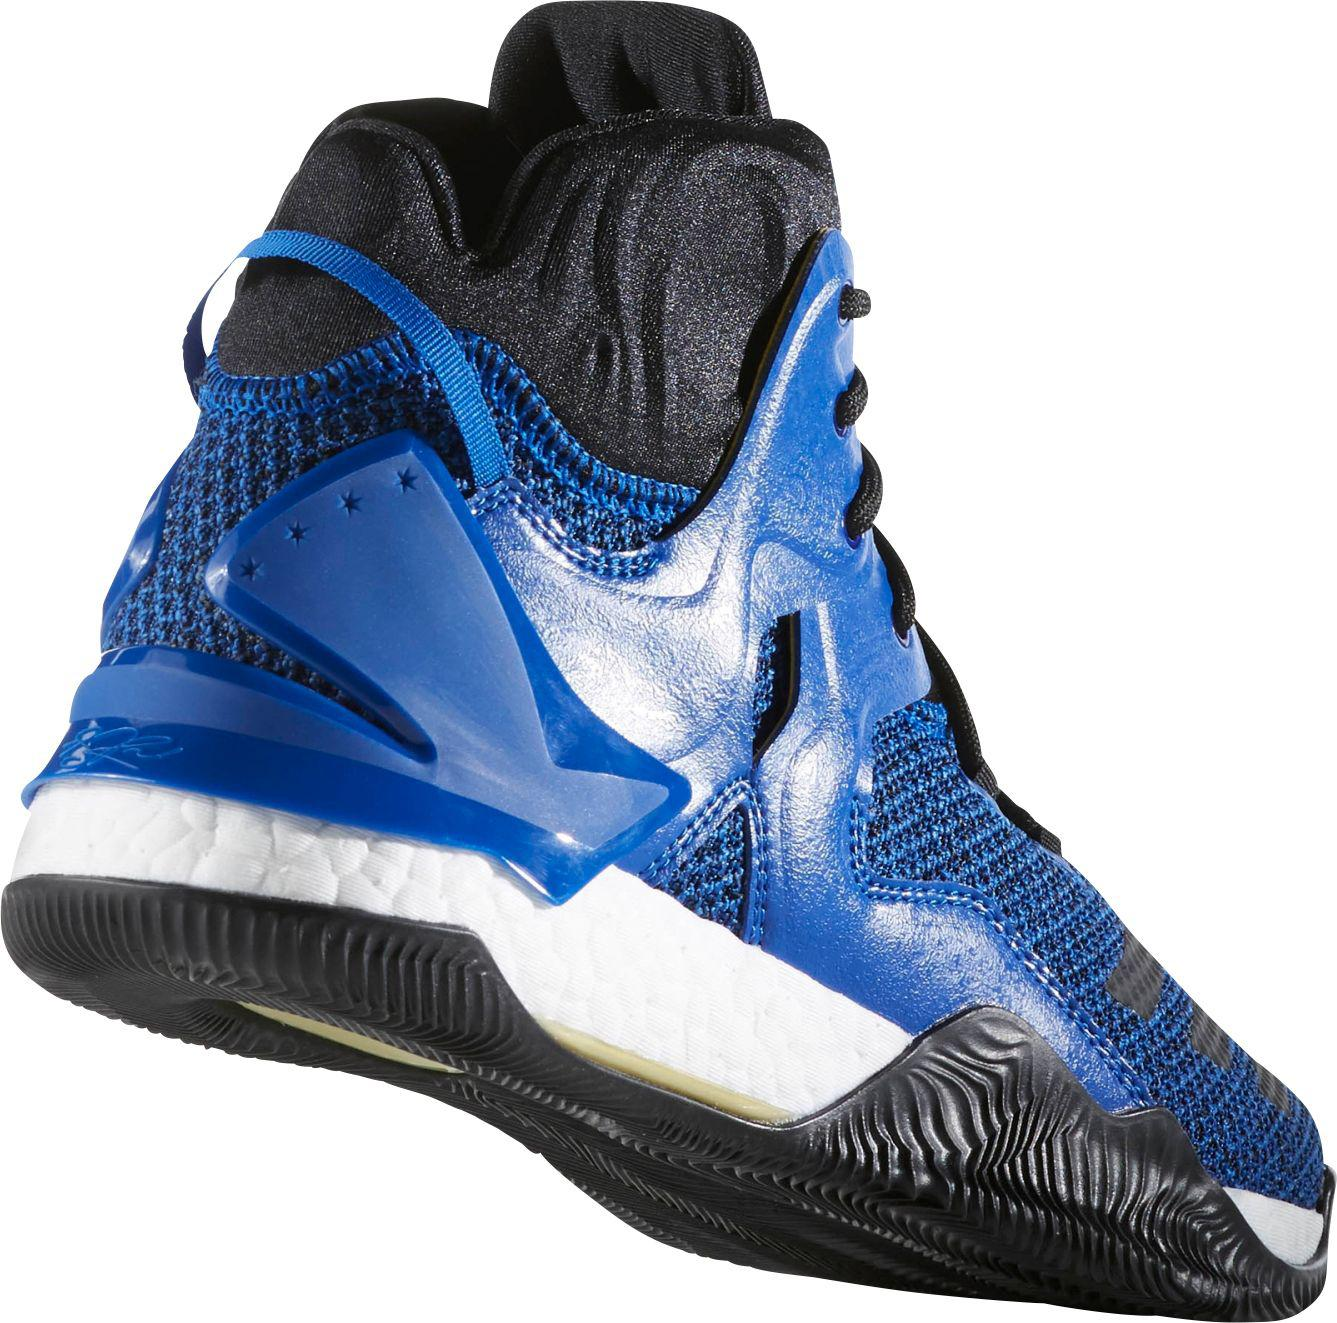 ebce611253bc Lyst - adidas D Rose 7 Boost Basketball Shoes in Blue for Men